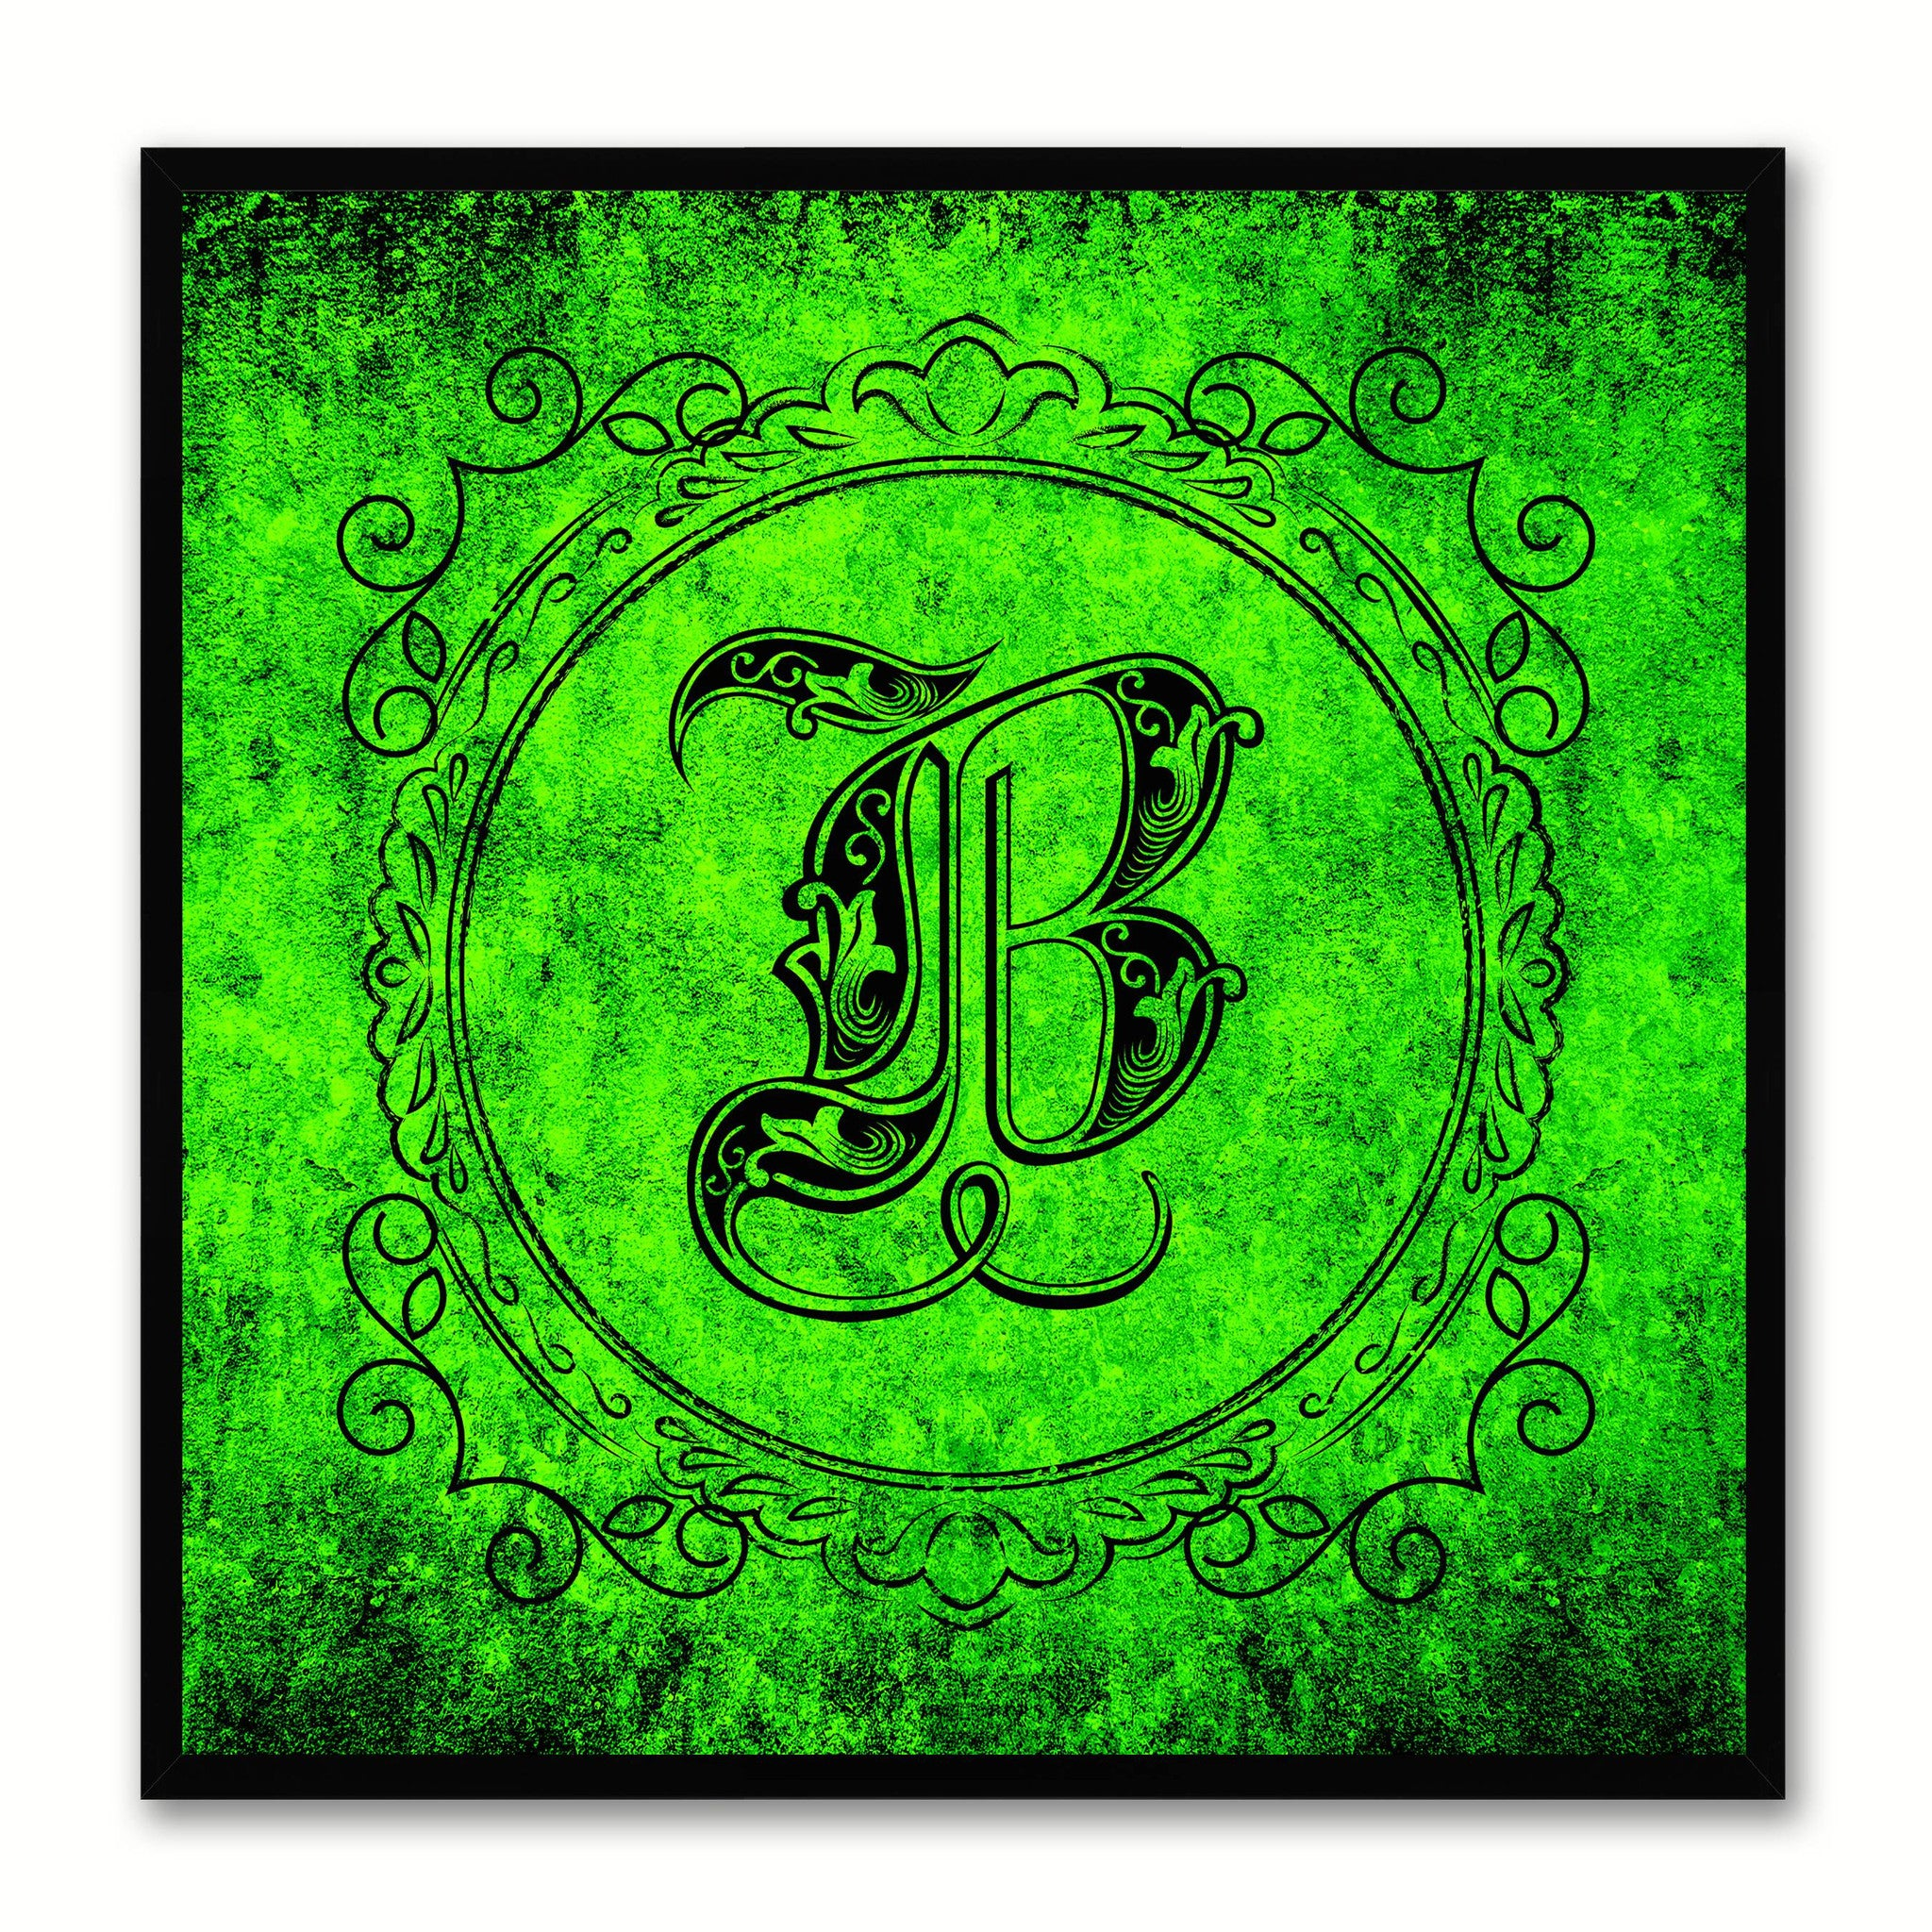 Alphabet B Green Canvas Print Black Frame Kids Bedroom Wall Décor Home Art